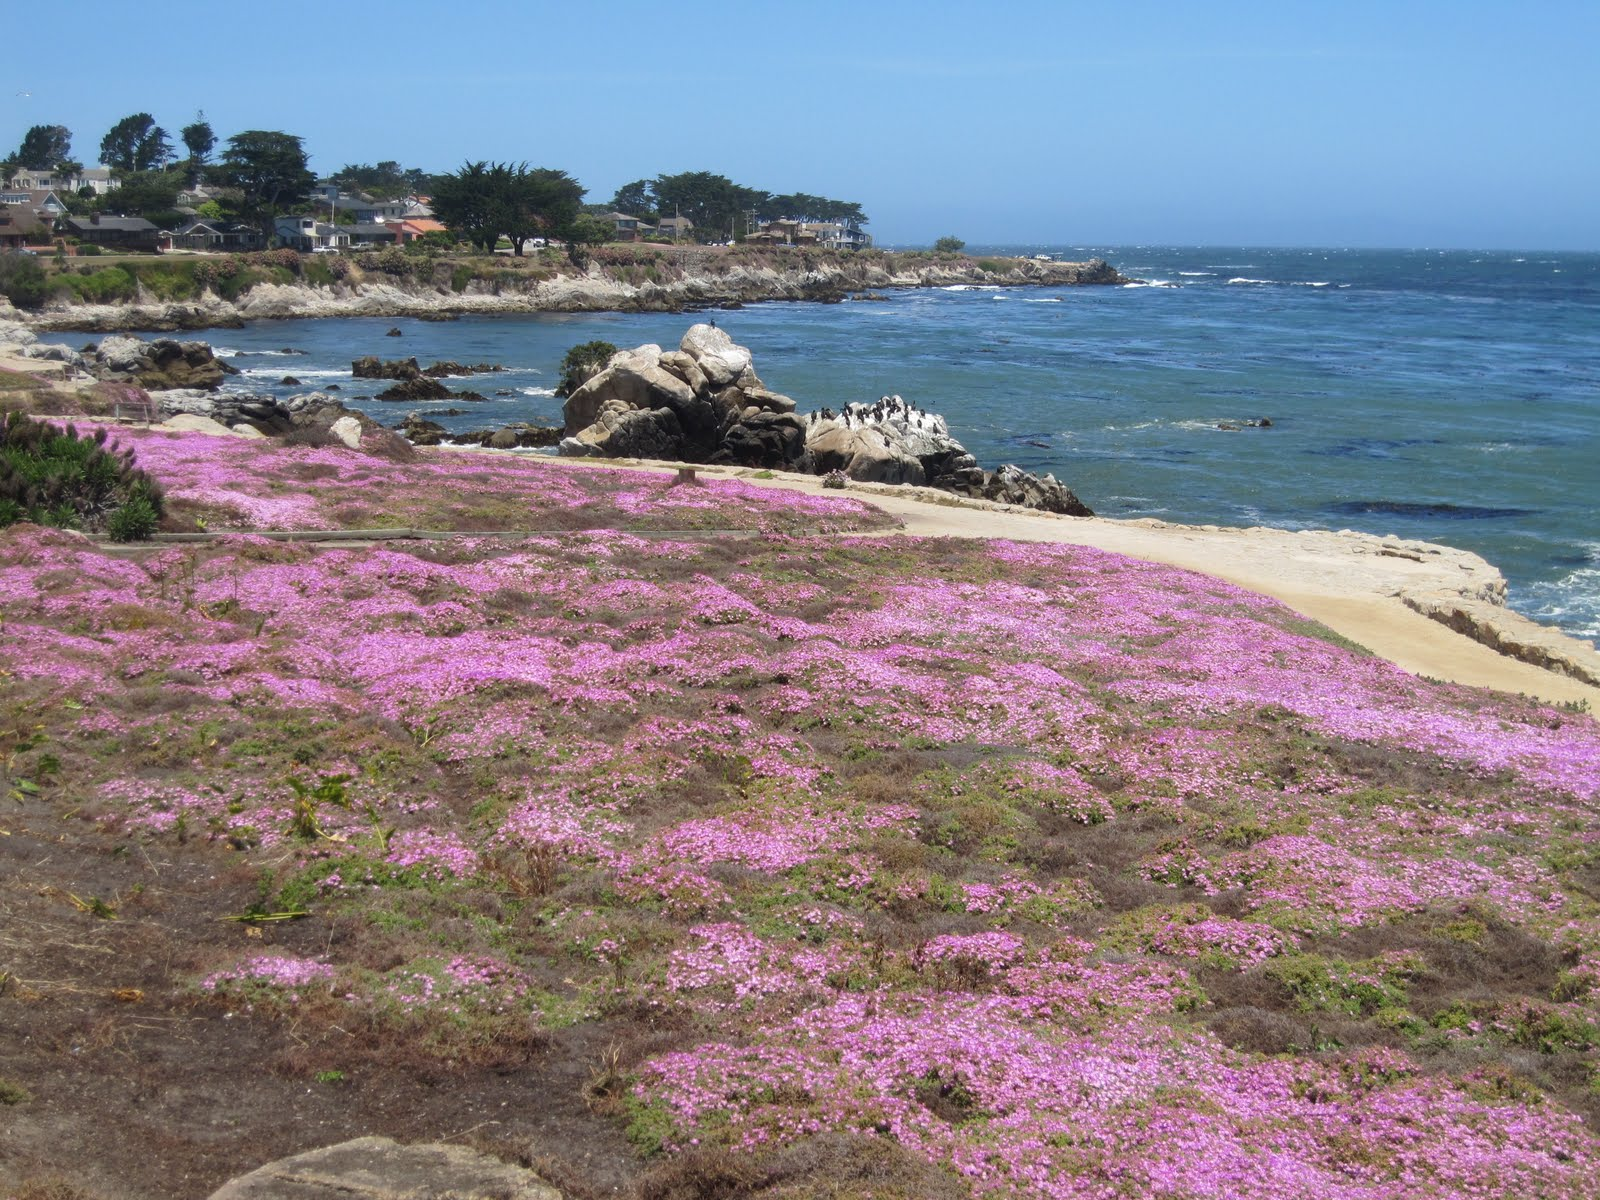 Ca Legacy Plate >> Ken B Travels: Summer residence in Pacific Grove